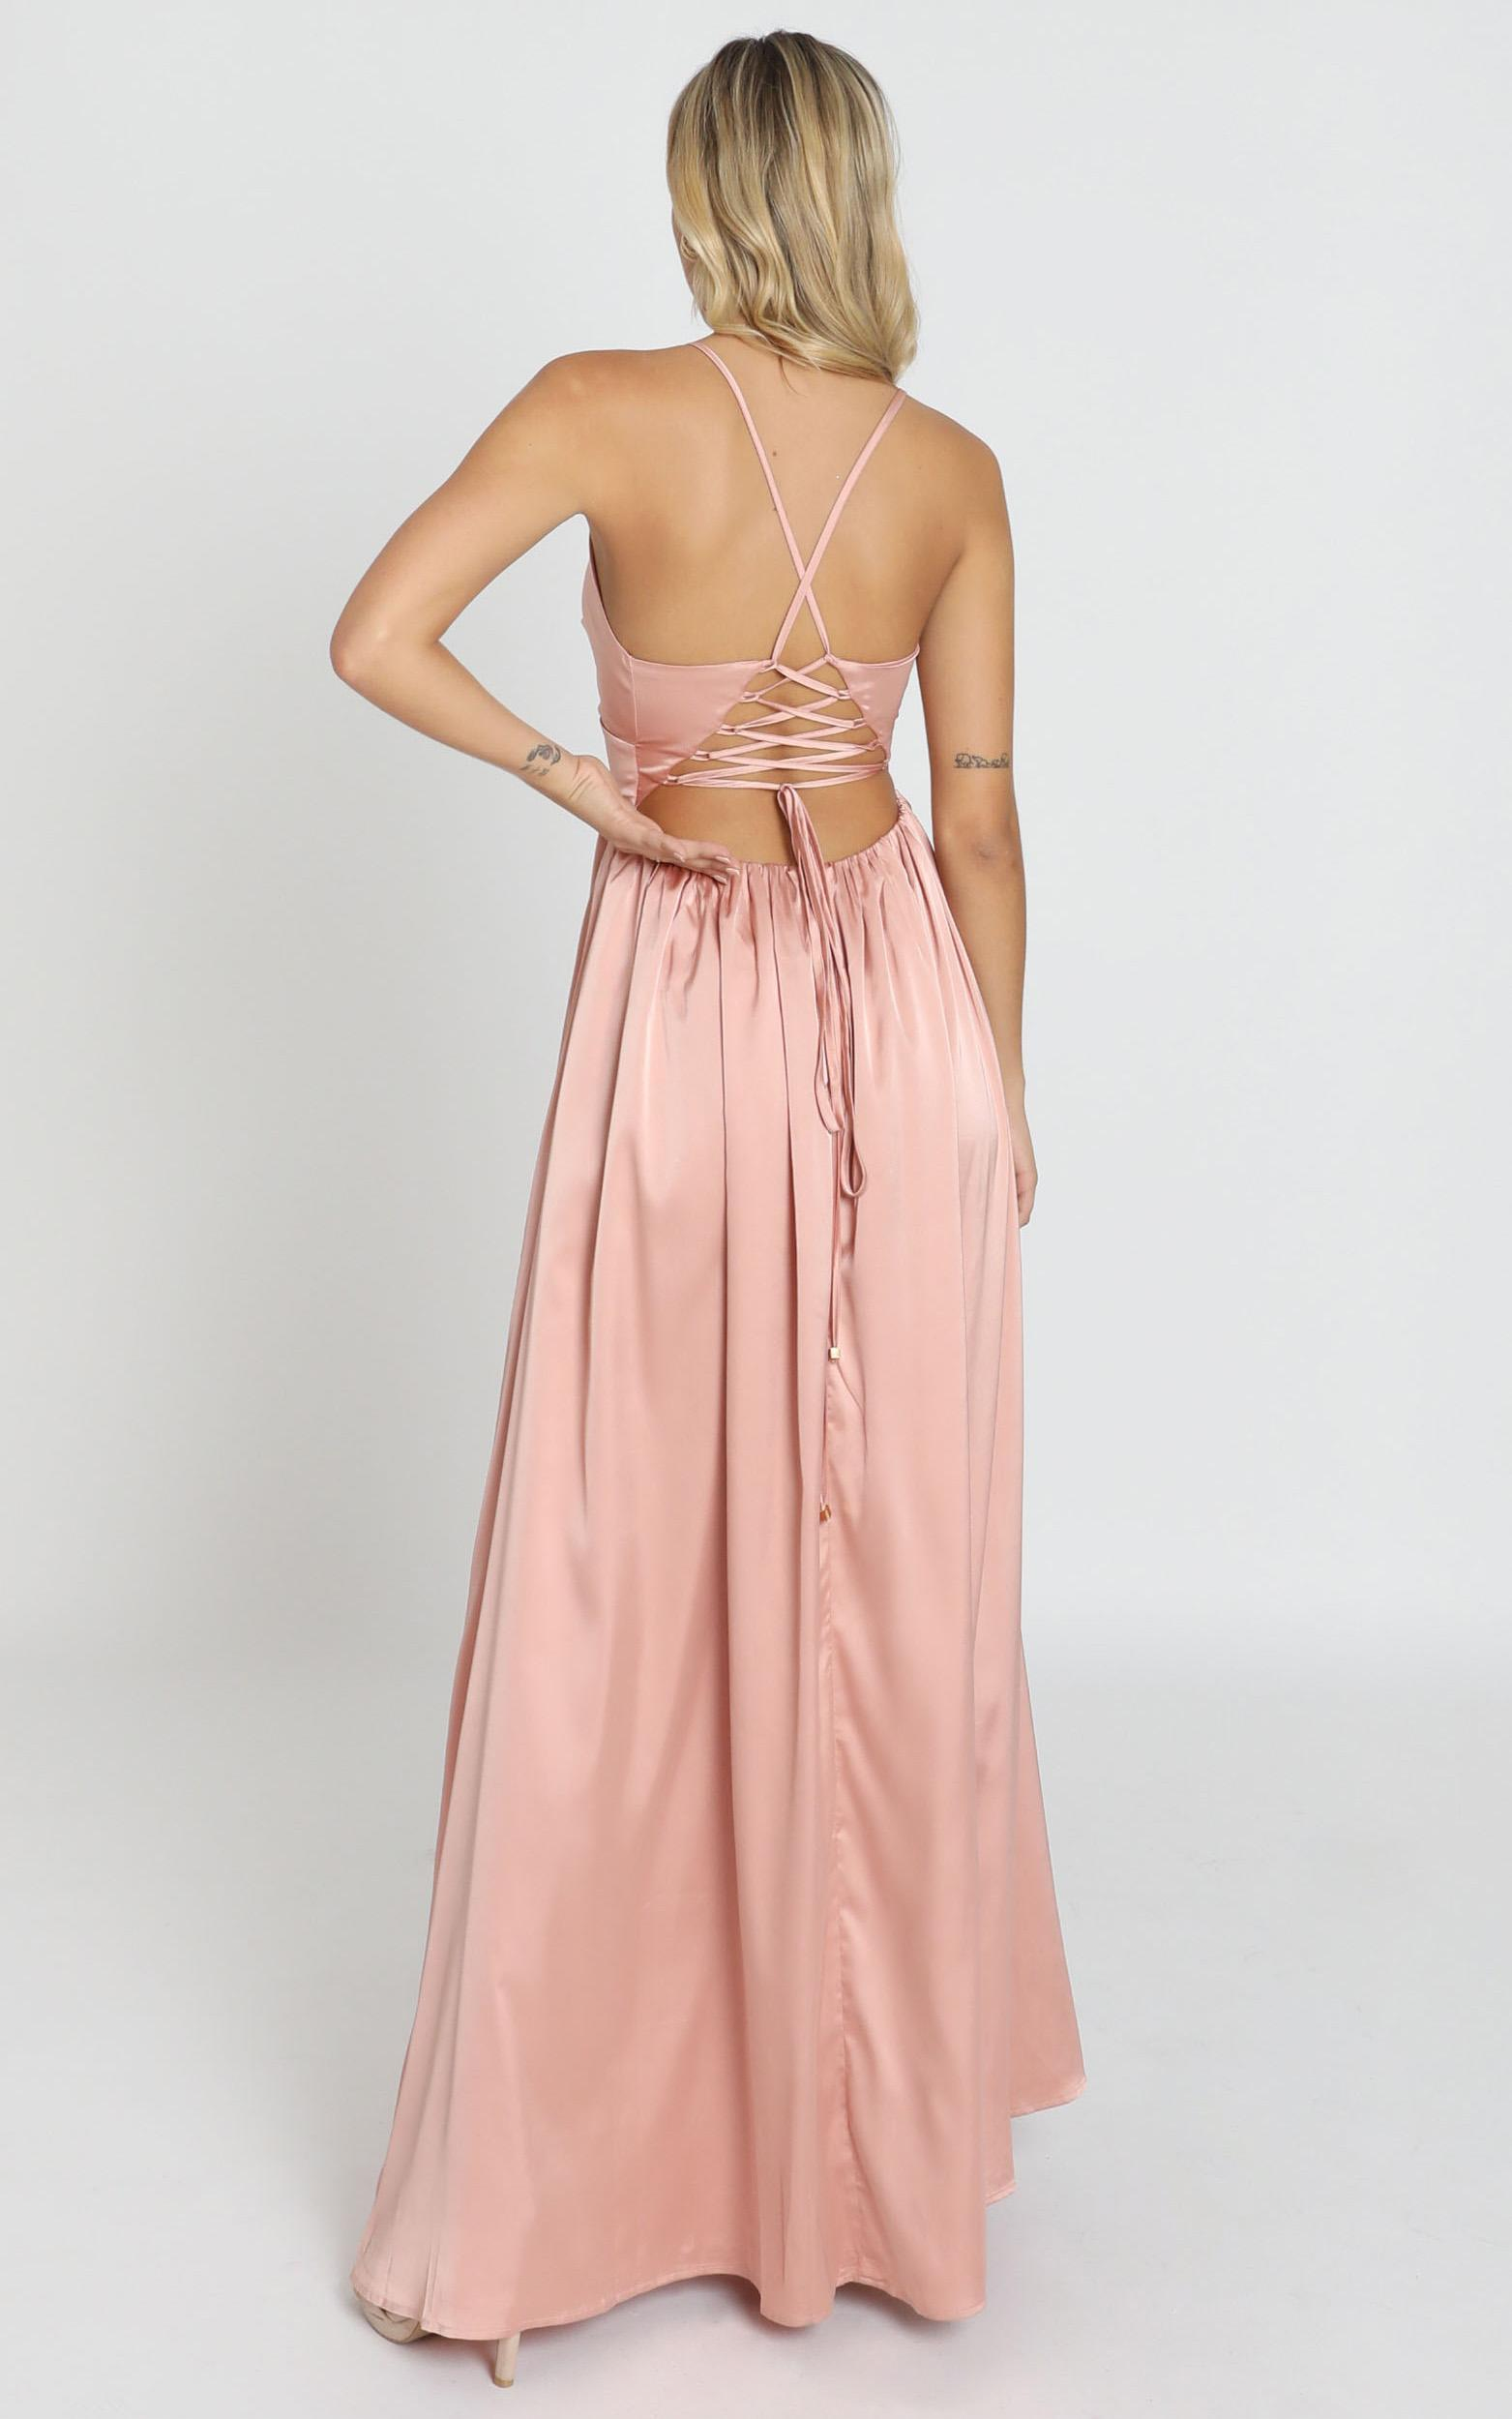 I Want The World To Know Dress in Rose Satin - 14, PNK2, hi-res image number null